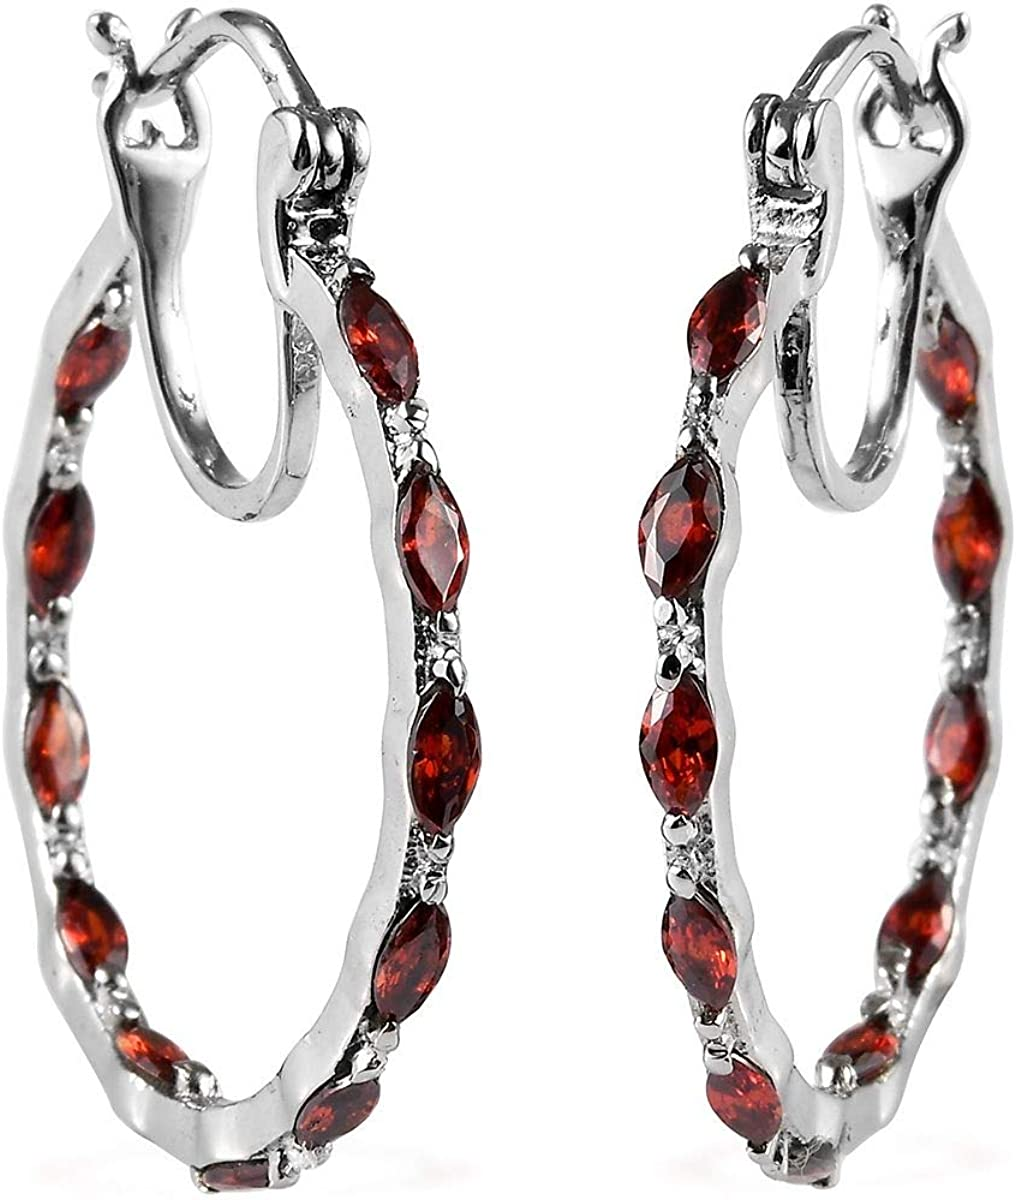 Shop LC Inside Out Hoops, Hoop Earrings for Women Stainless Steel Jewelry Gifts (Multi-Color/Red/Green/Pink/Blue/Purple/Orange)